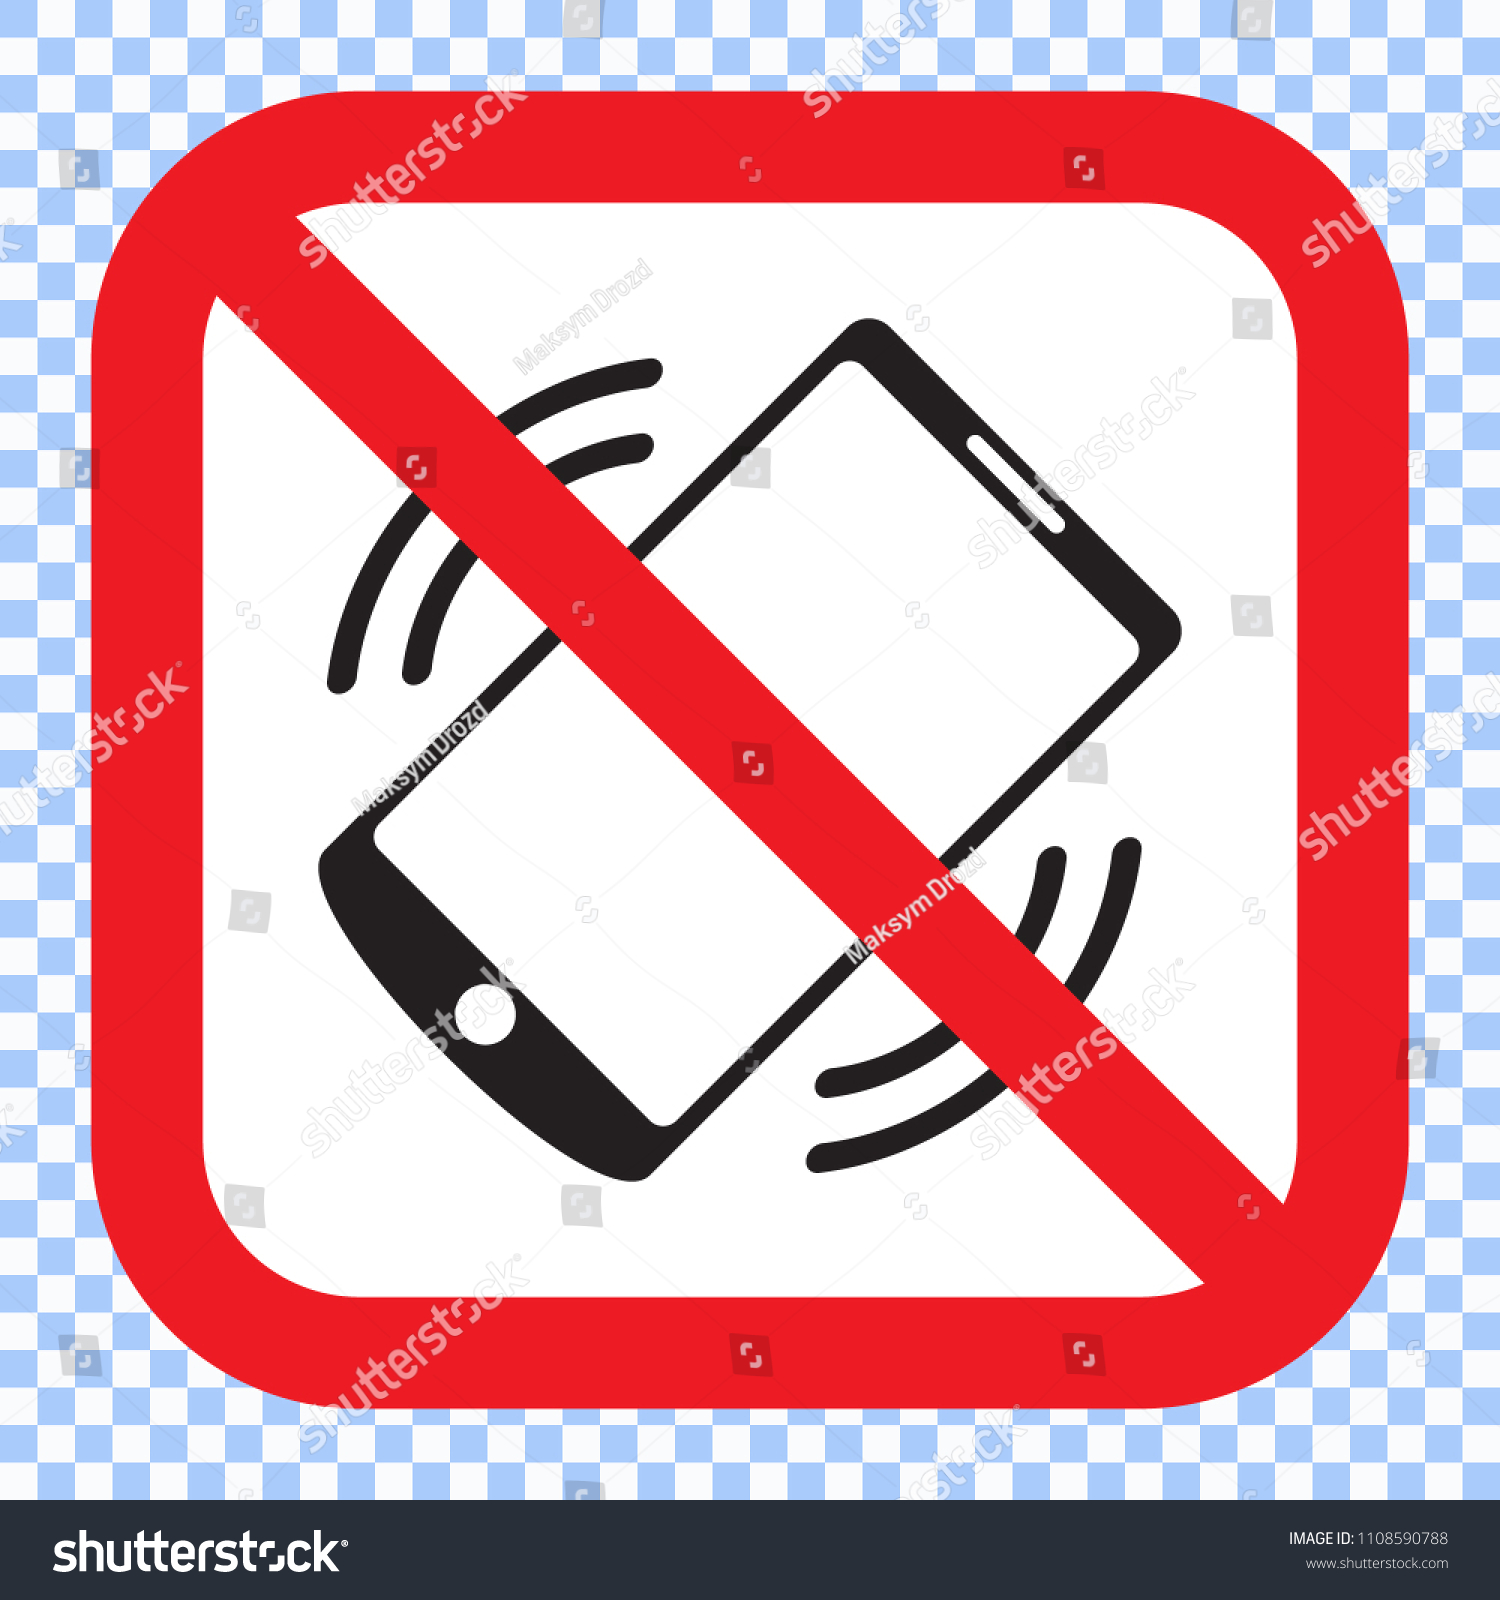 No Phones Square Red Vector Sign Stock Vector (Royalty Free) 1108590788